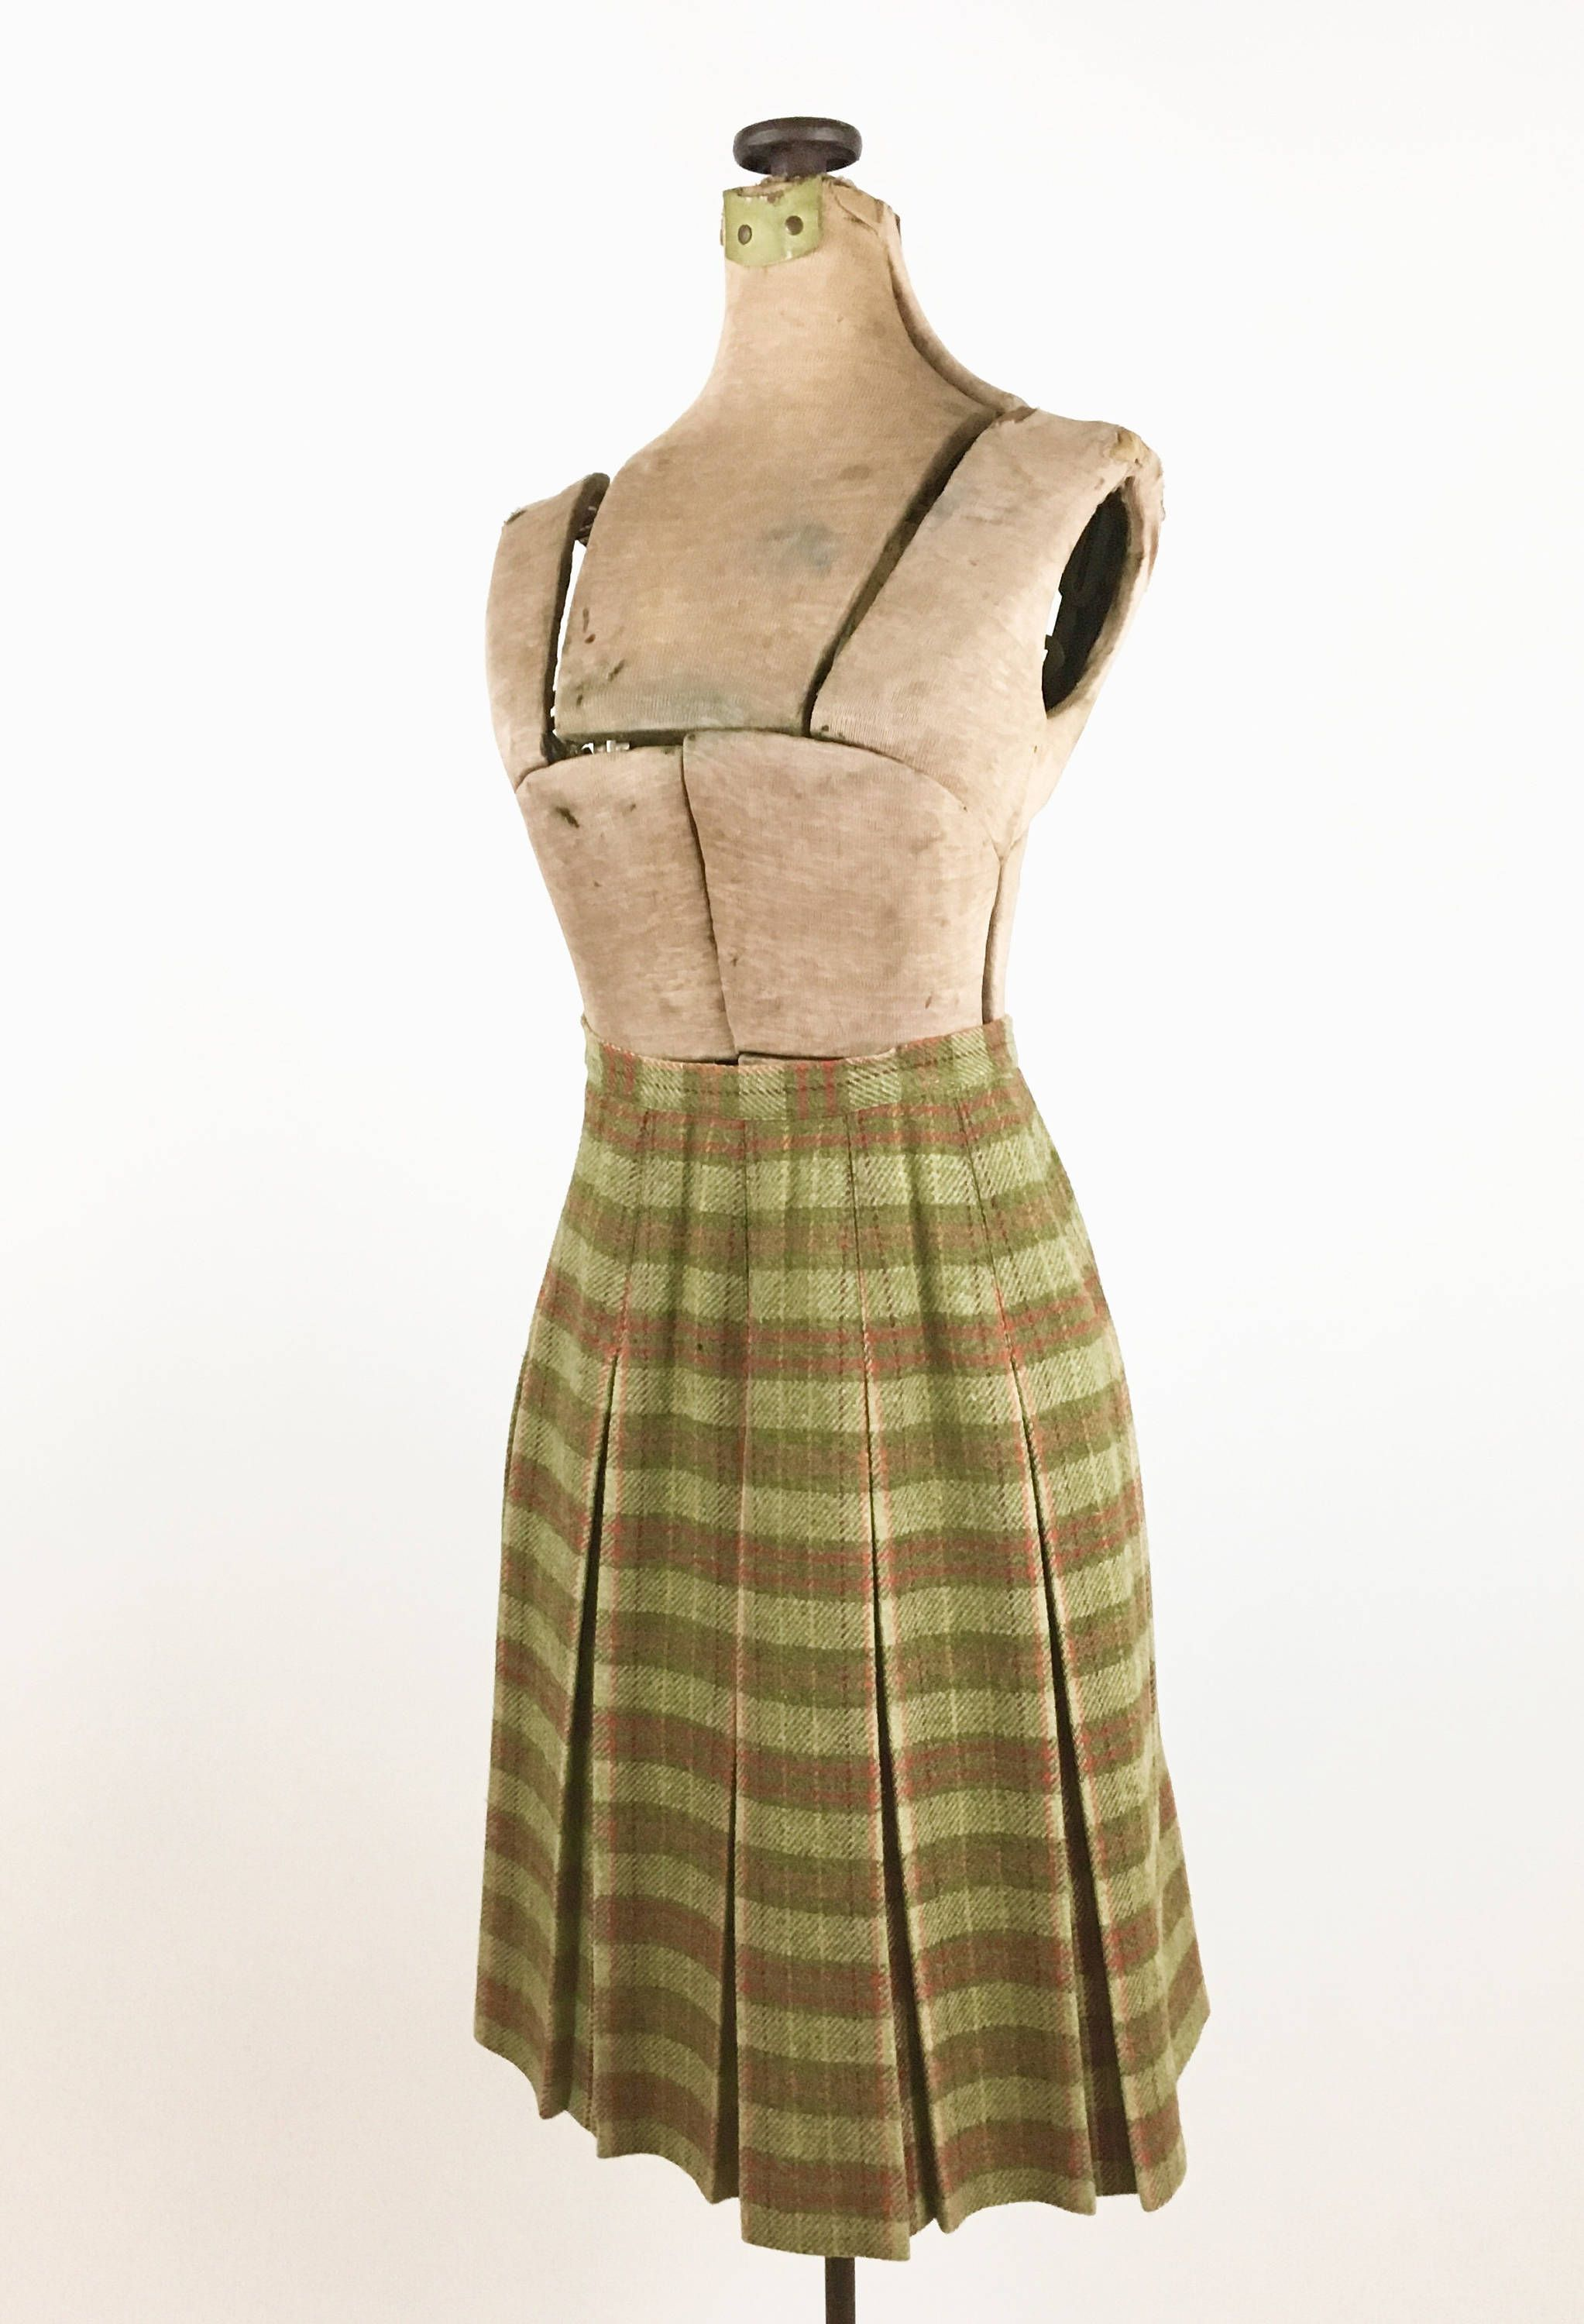 ec28163877 1960s Plaid Wool Skirt Pleated Vintage 60s Pleated Wool Plaid Skirt Olive  Green Plaid Size S XS Women's 1960s Winter Fashion by transmigration on Etsy